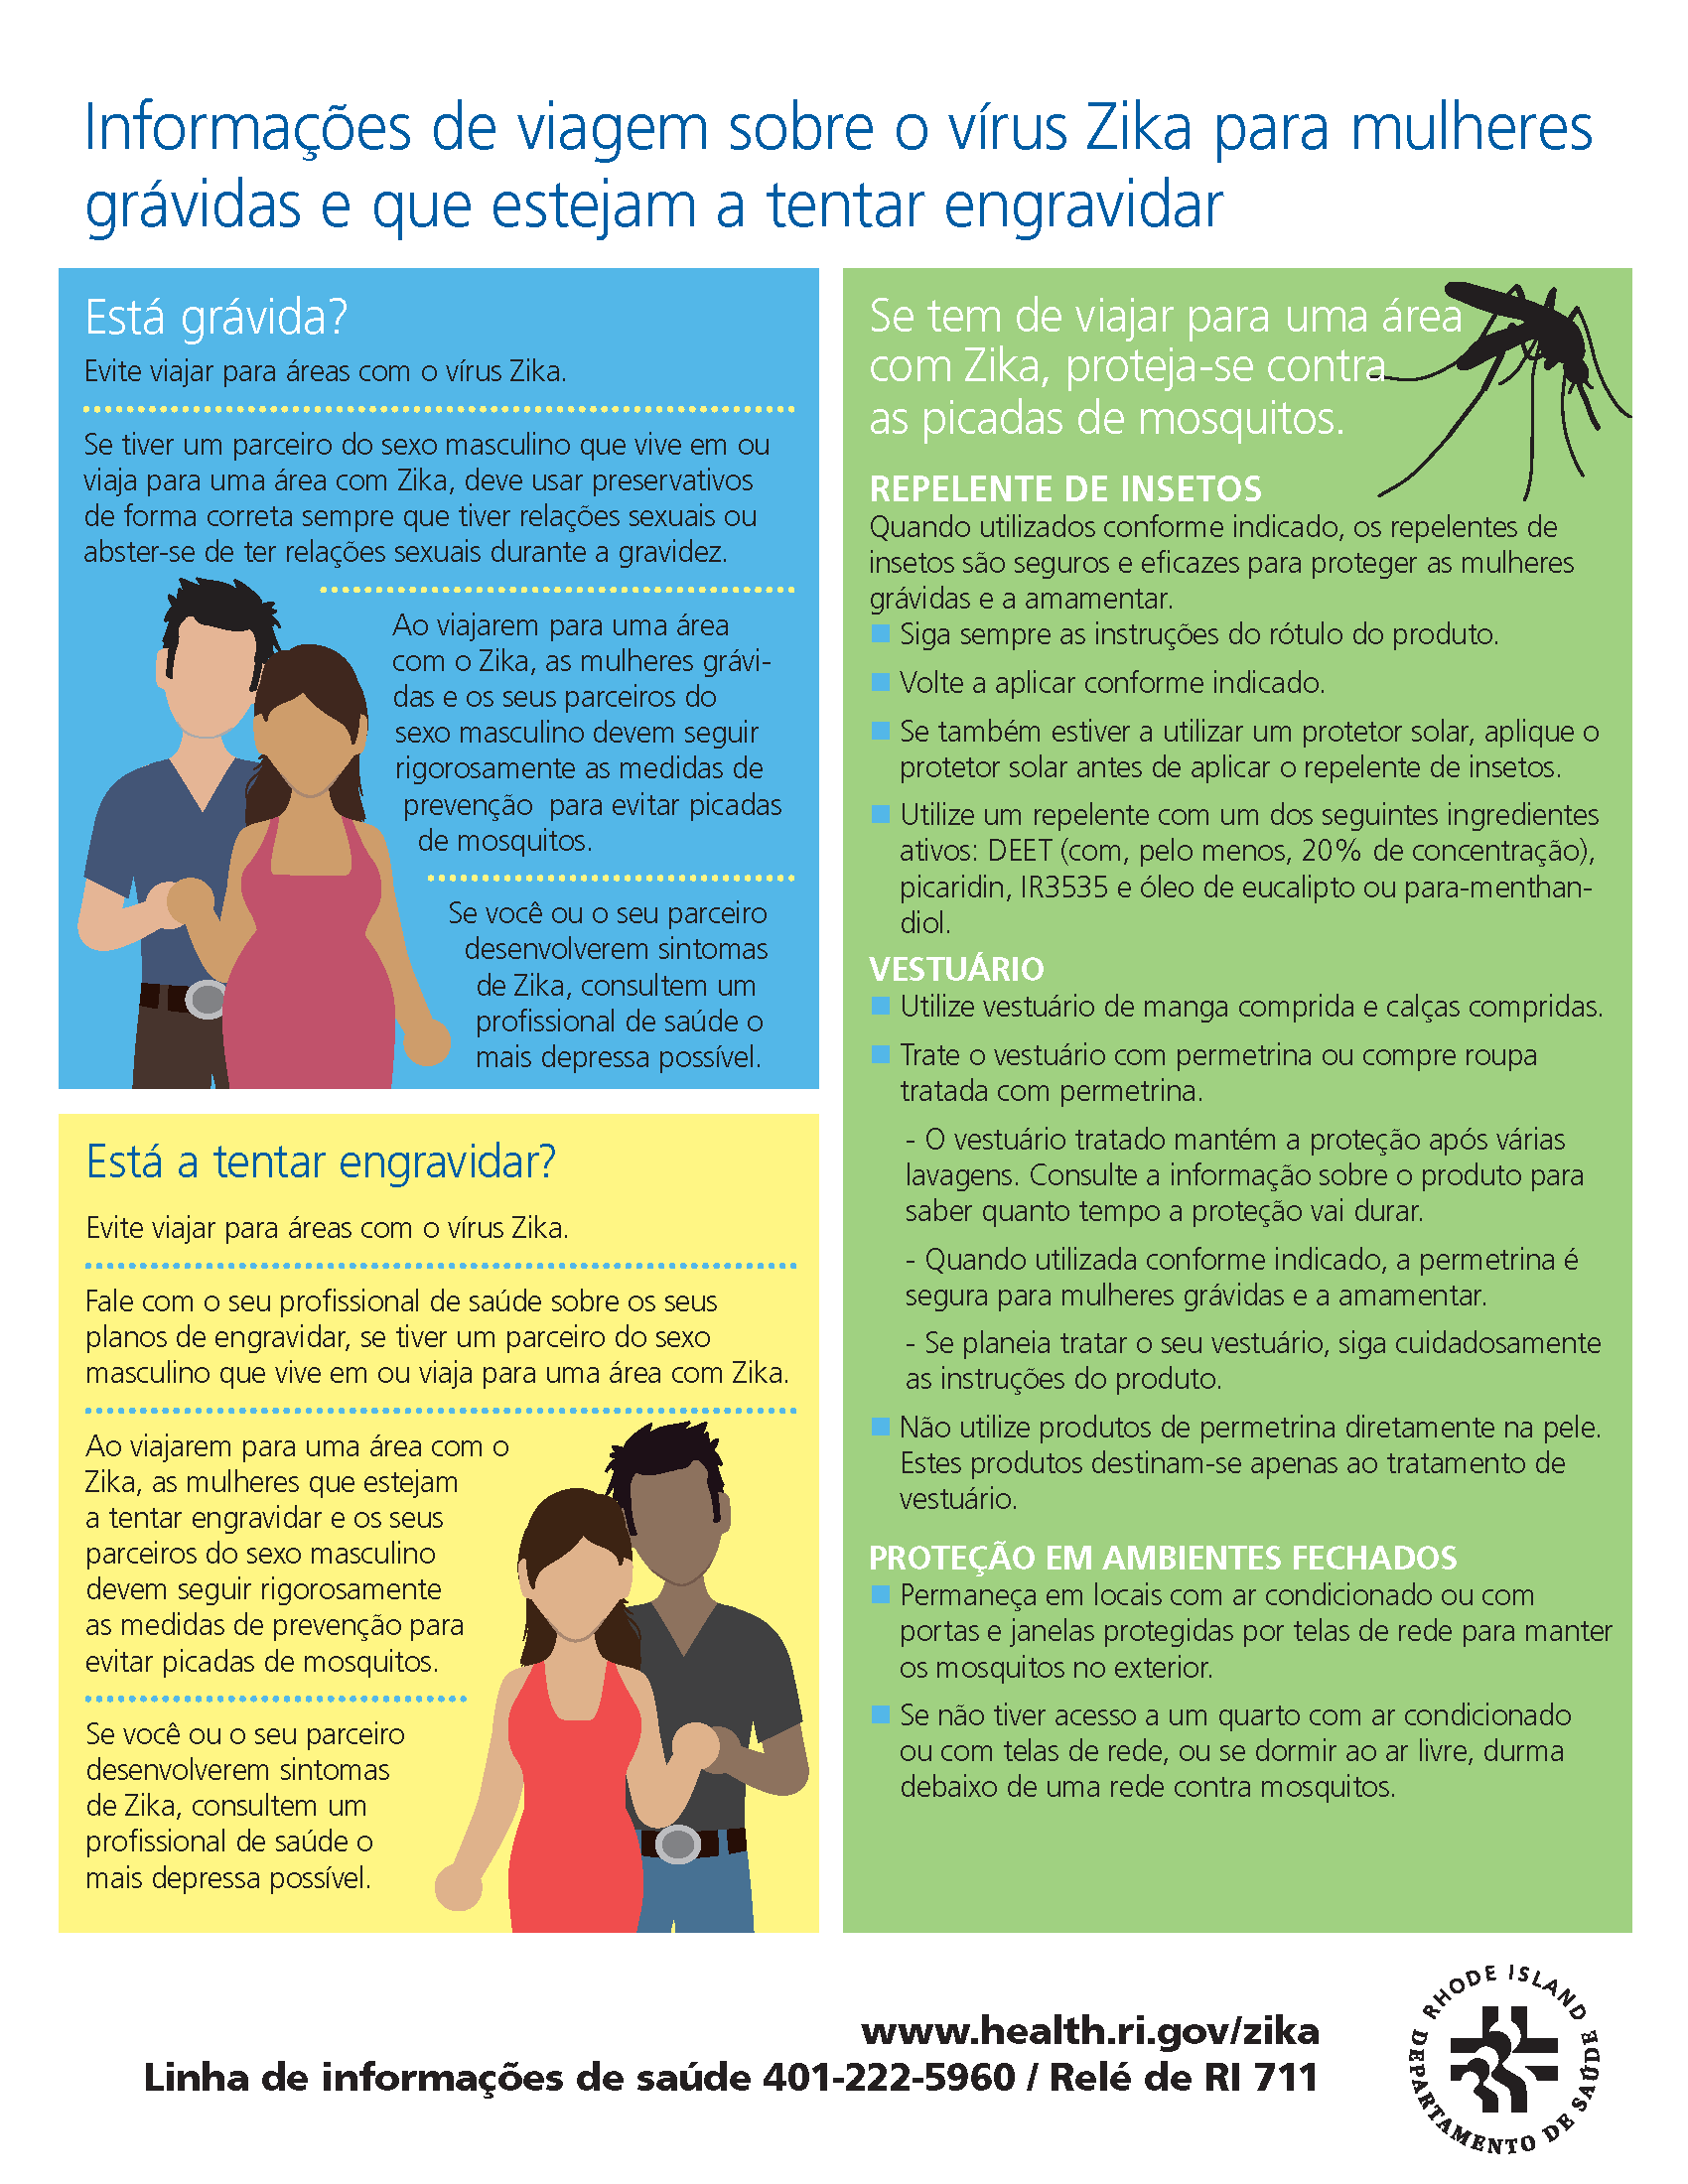 Zika Virus Travel Information for Pregnant Women and Women Trying to Become Pregnant (Portuguese)